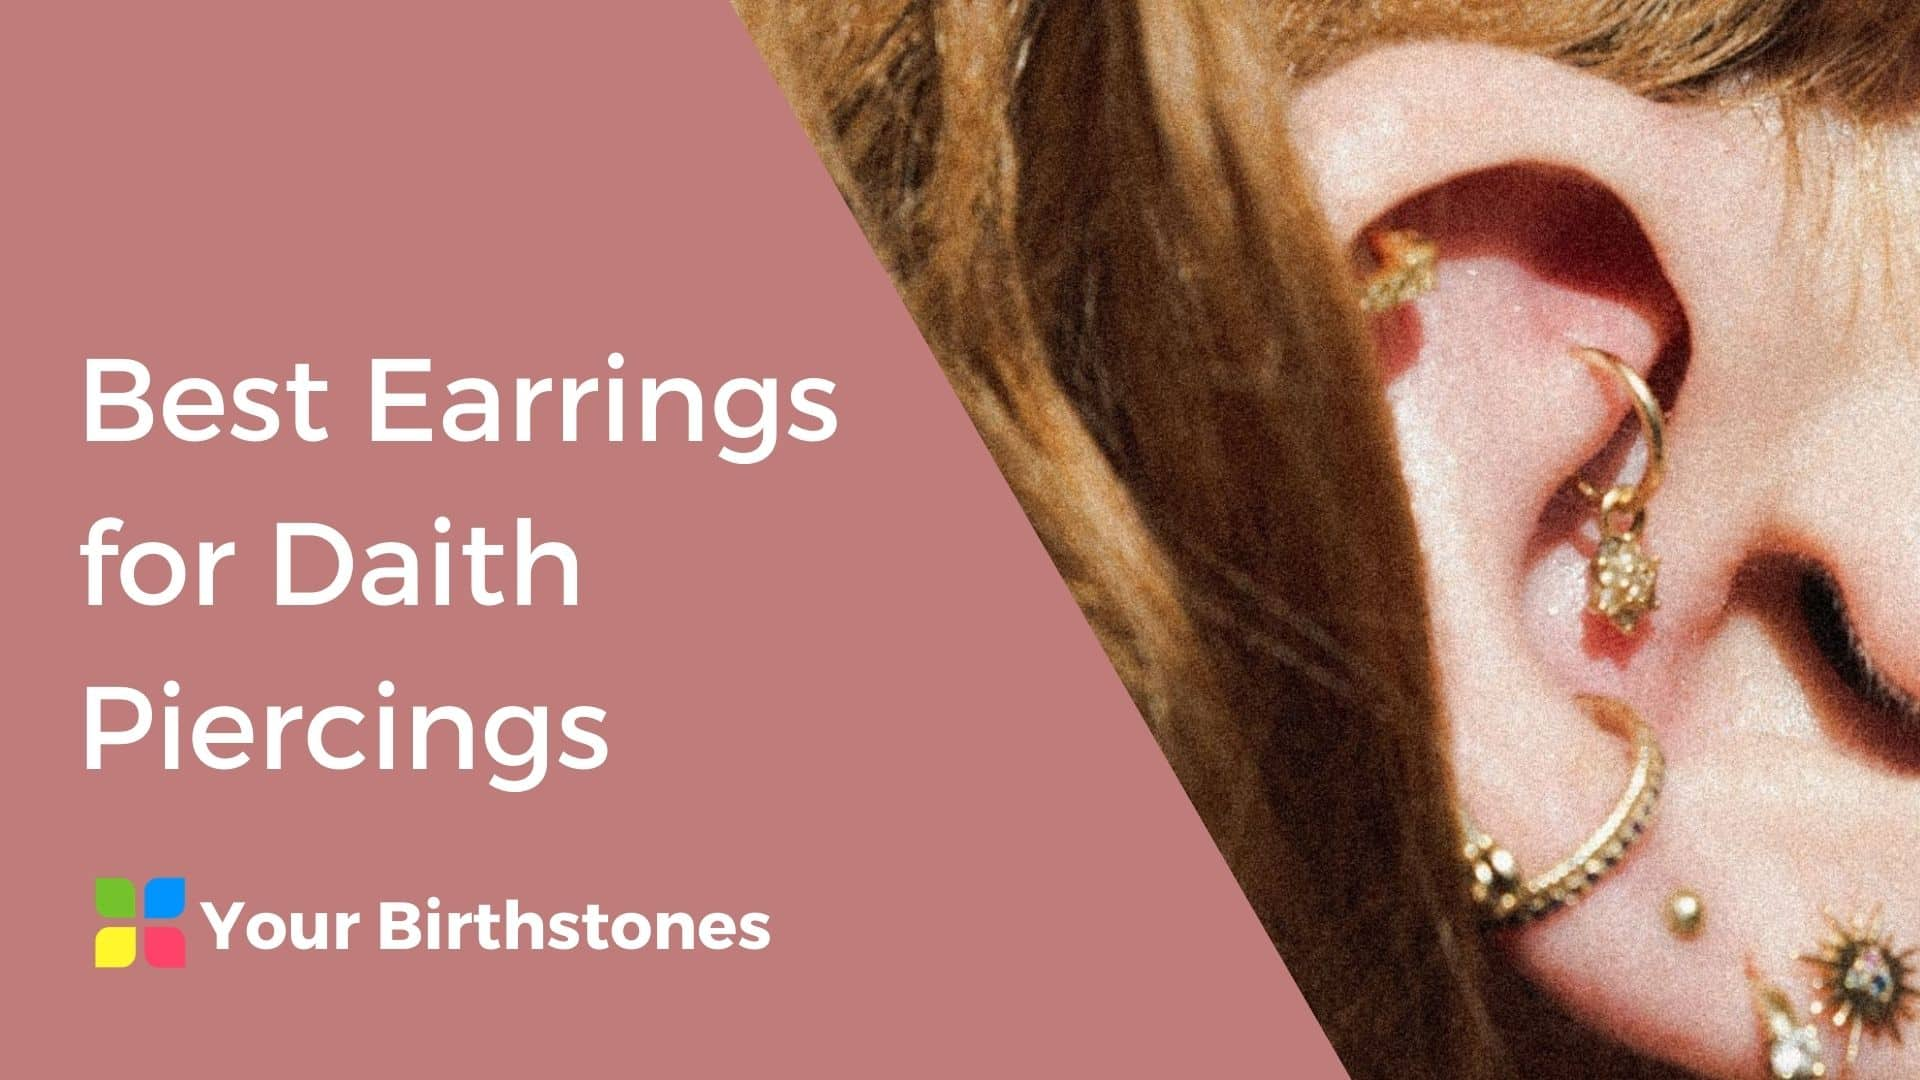 Best Earrings for Daith Piercing